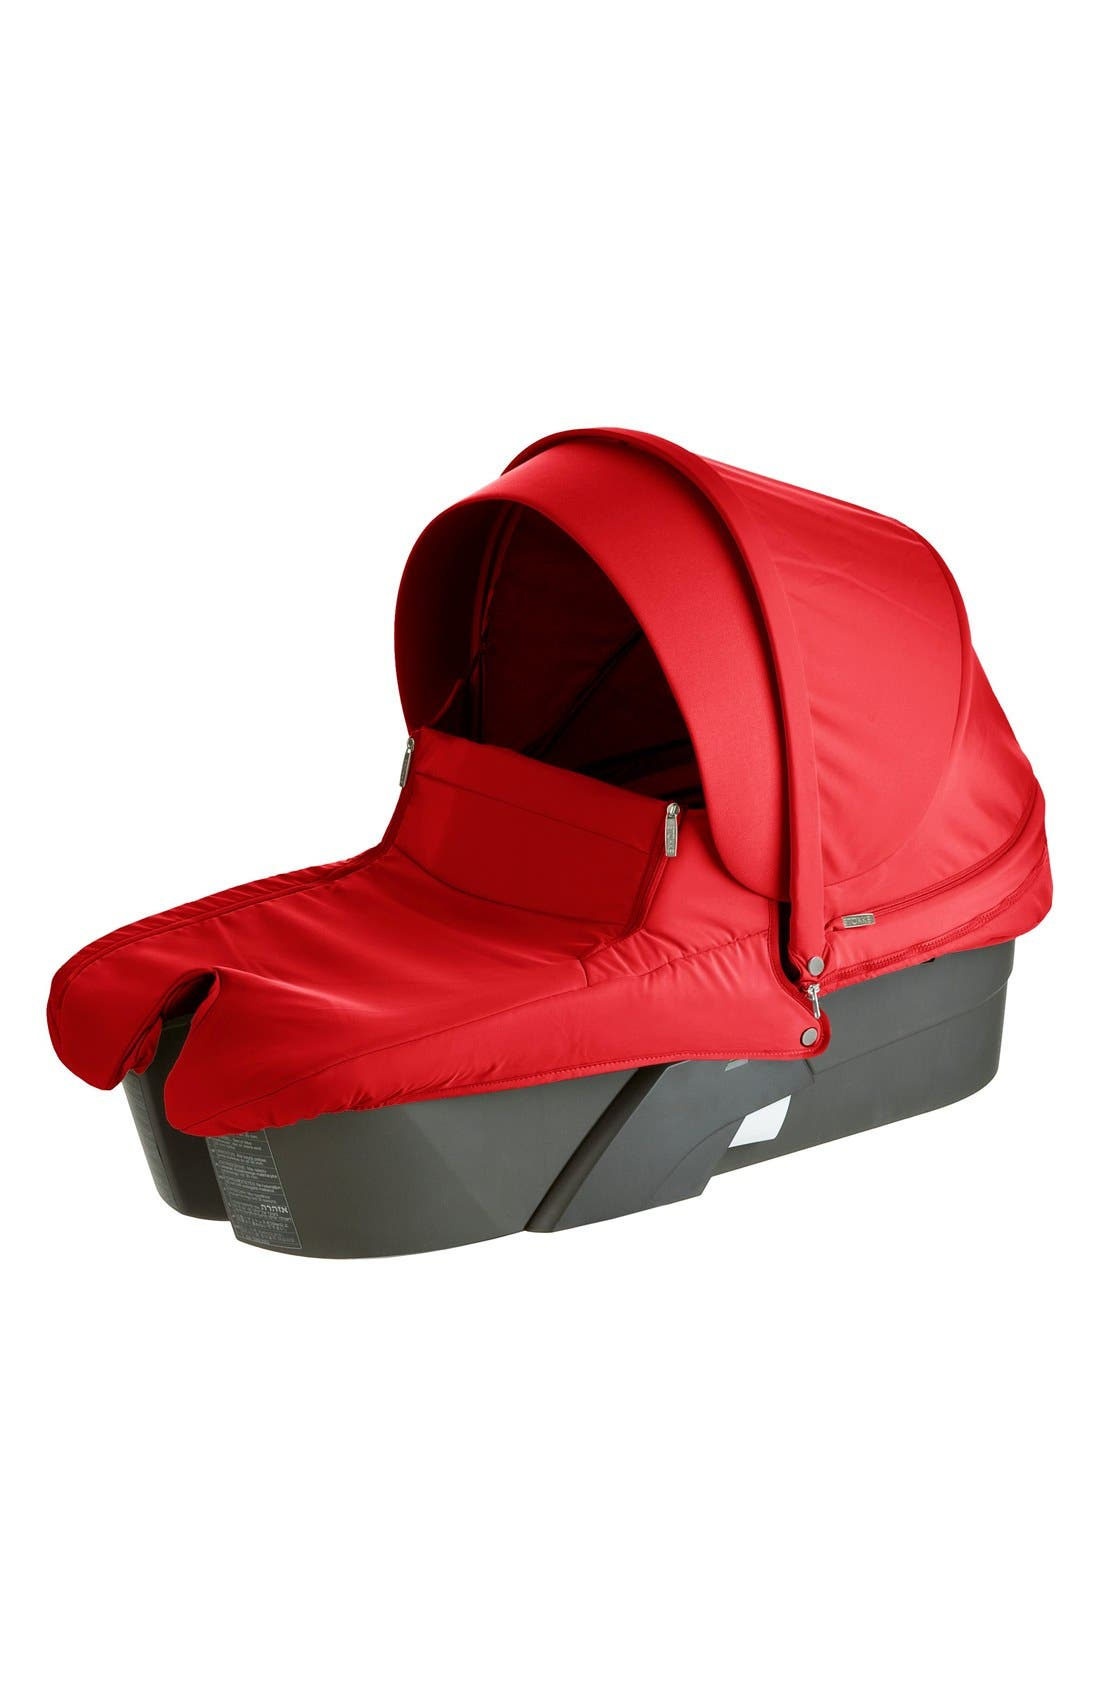 'Xplory<sup>®</sup>' Stroller Carry Cot,                         Main,                         color, 600